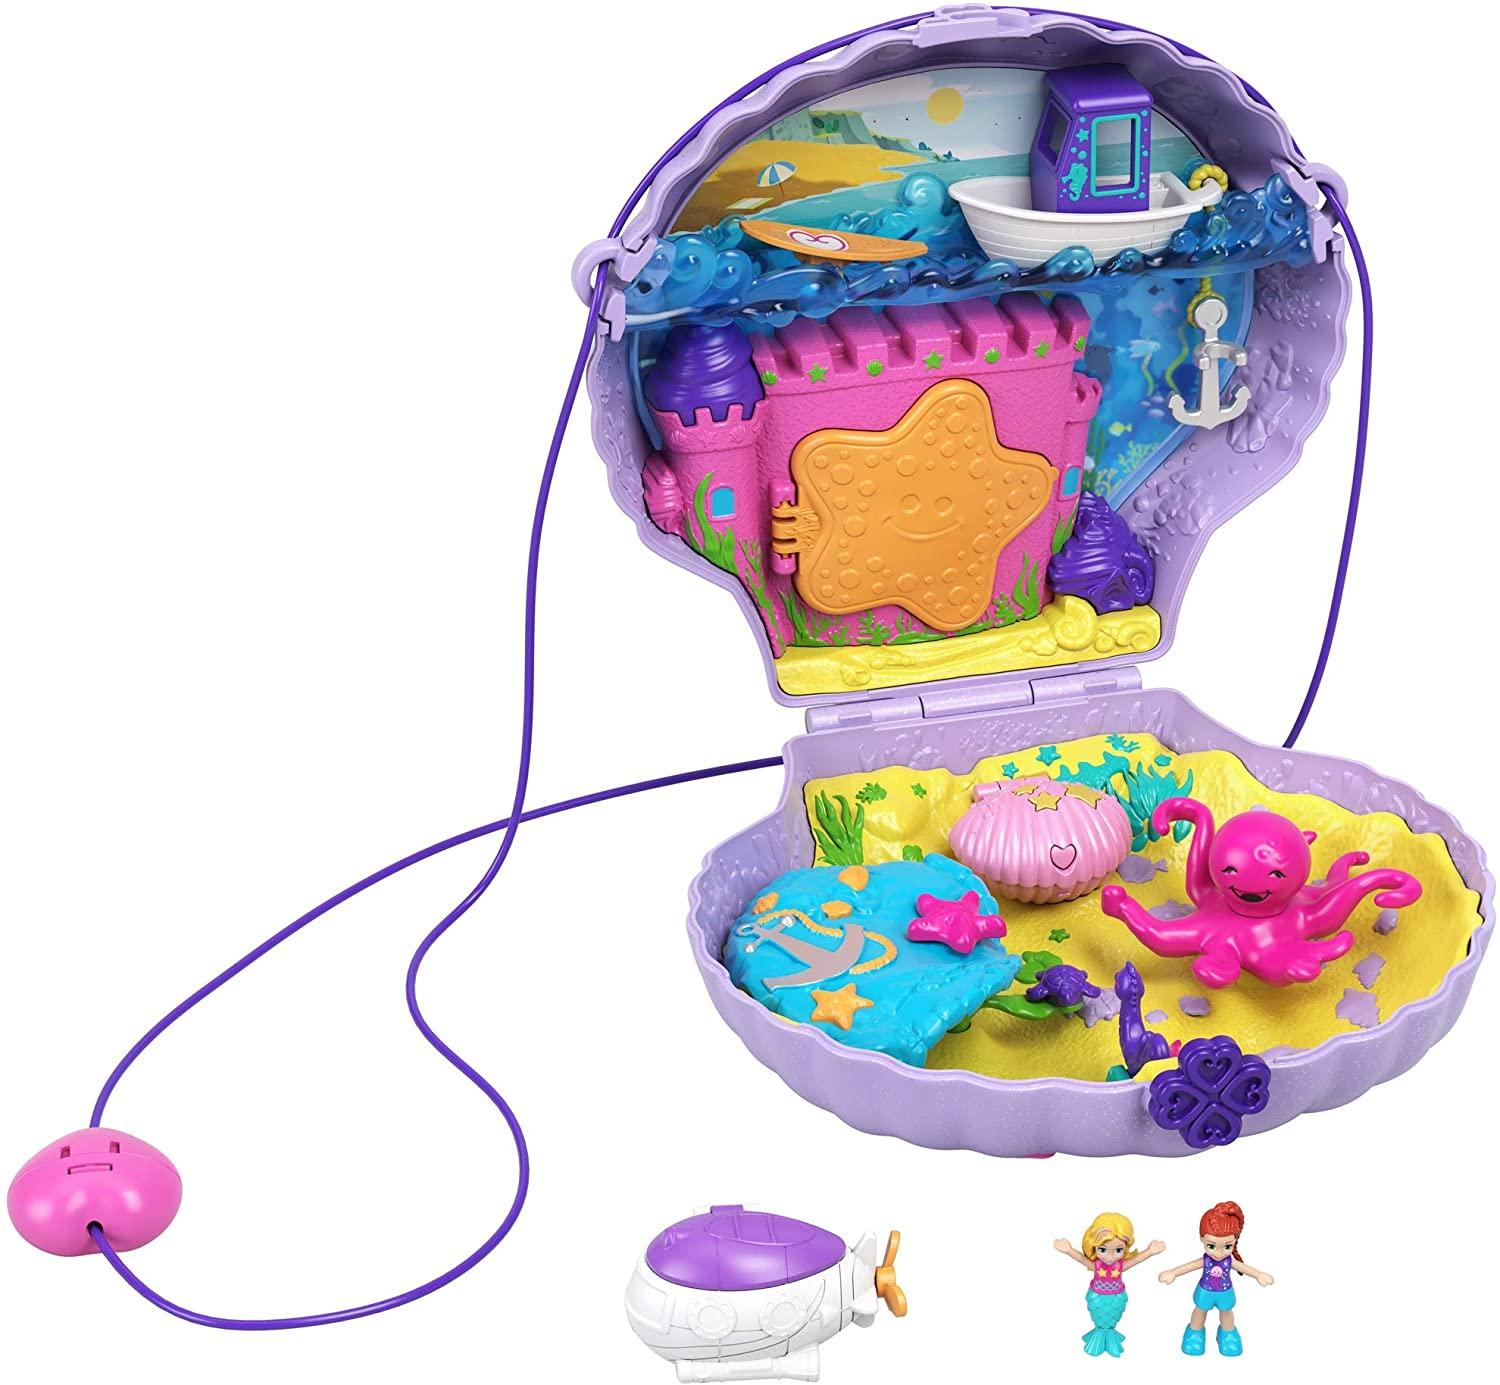 Polly Pocket Tiny Power Seashell Purse Τρέντι Τσαντάκι Κοχύλι (GNH11/GKJ63)